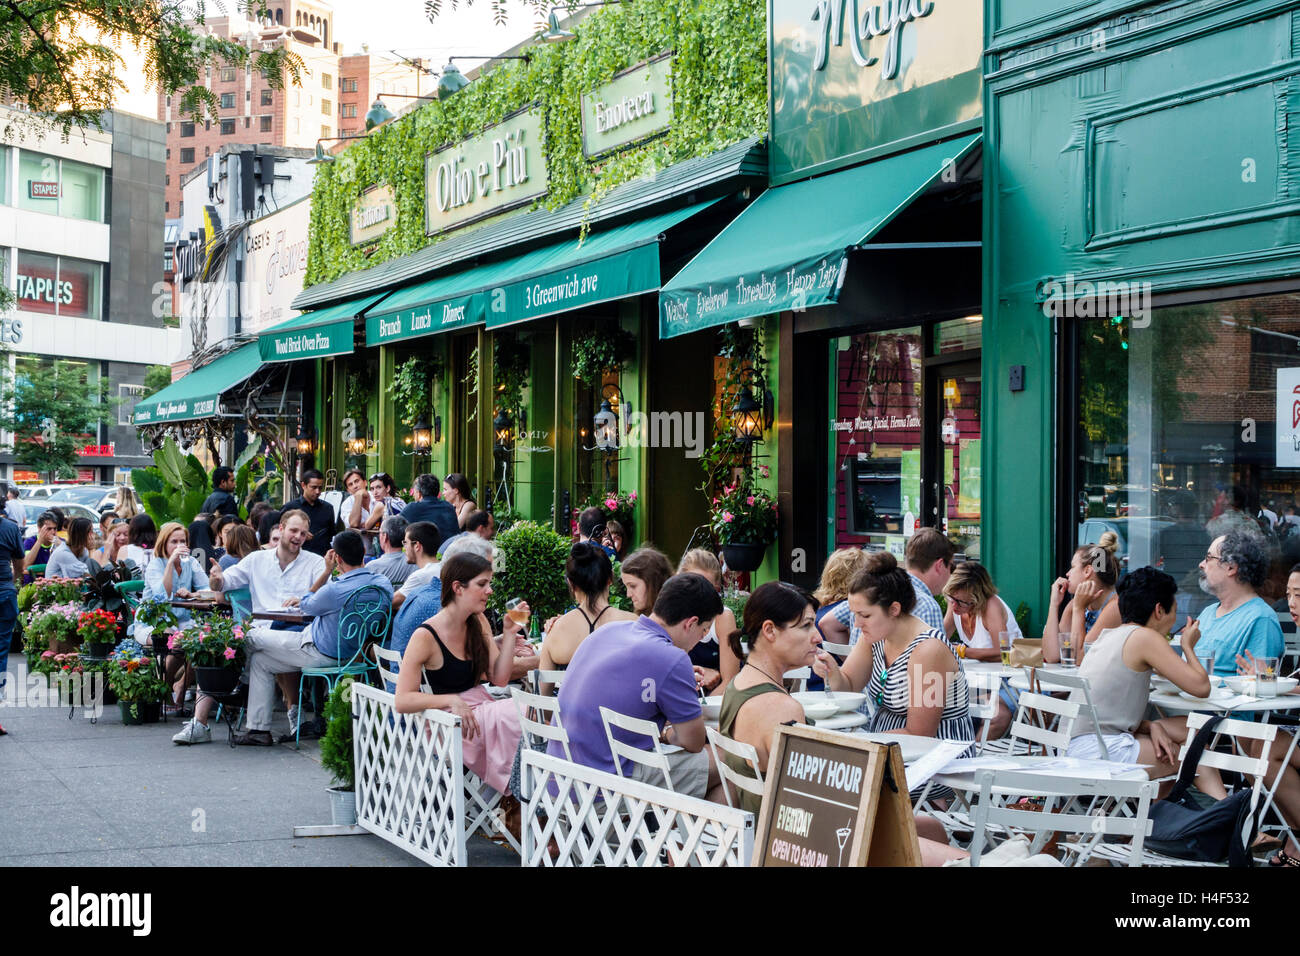 Crowded restaurant table - Manhattan New York City Nyc Ny West Village Olio E Piu Italian Restaurant Trattoria Sidewalk Alfresco